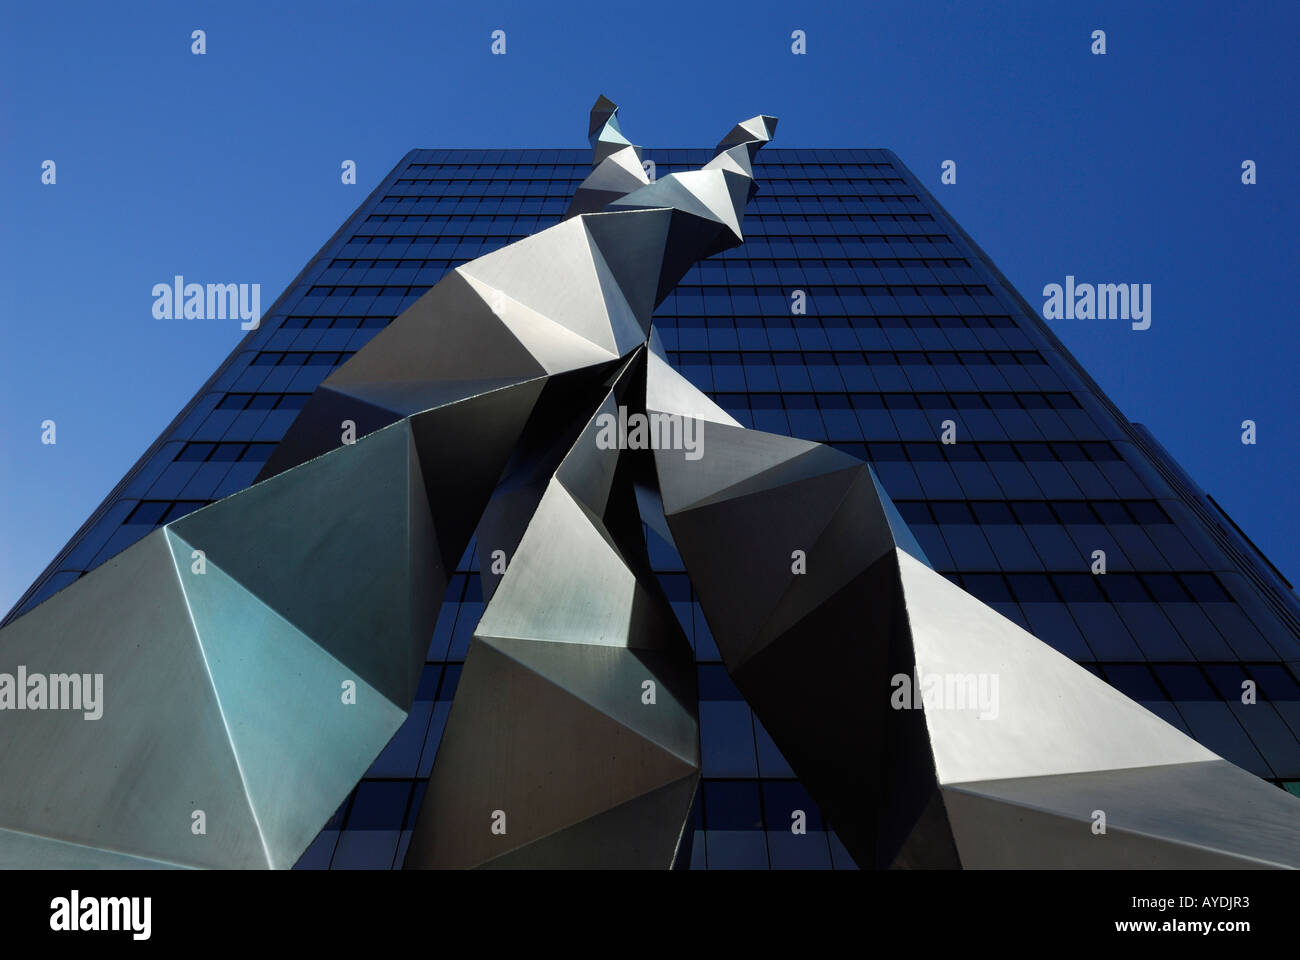 Folded triangular metal steel sculpture against a blue highrise office building and sky in Toronto - Stock Image